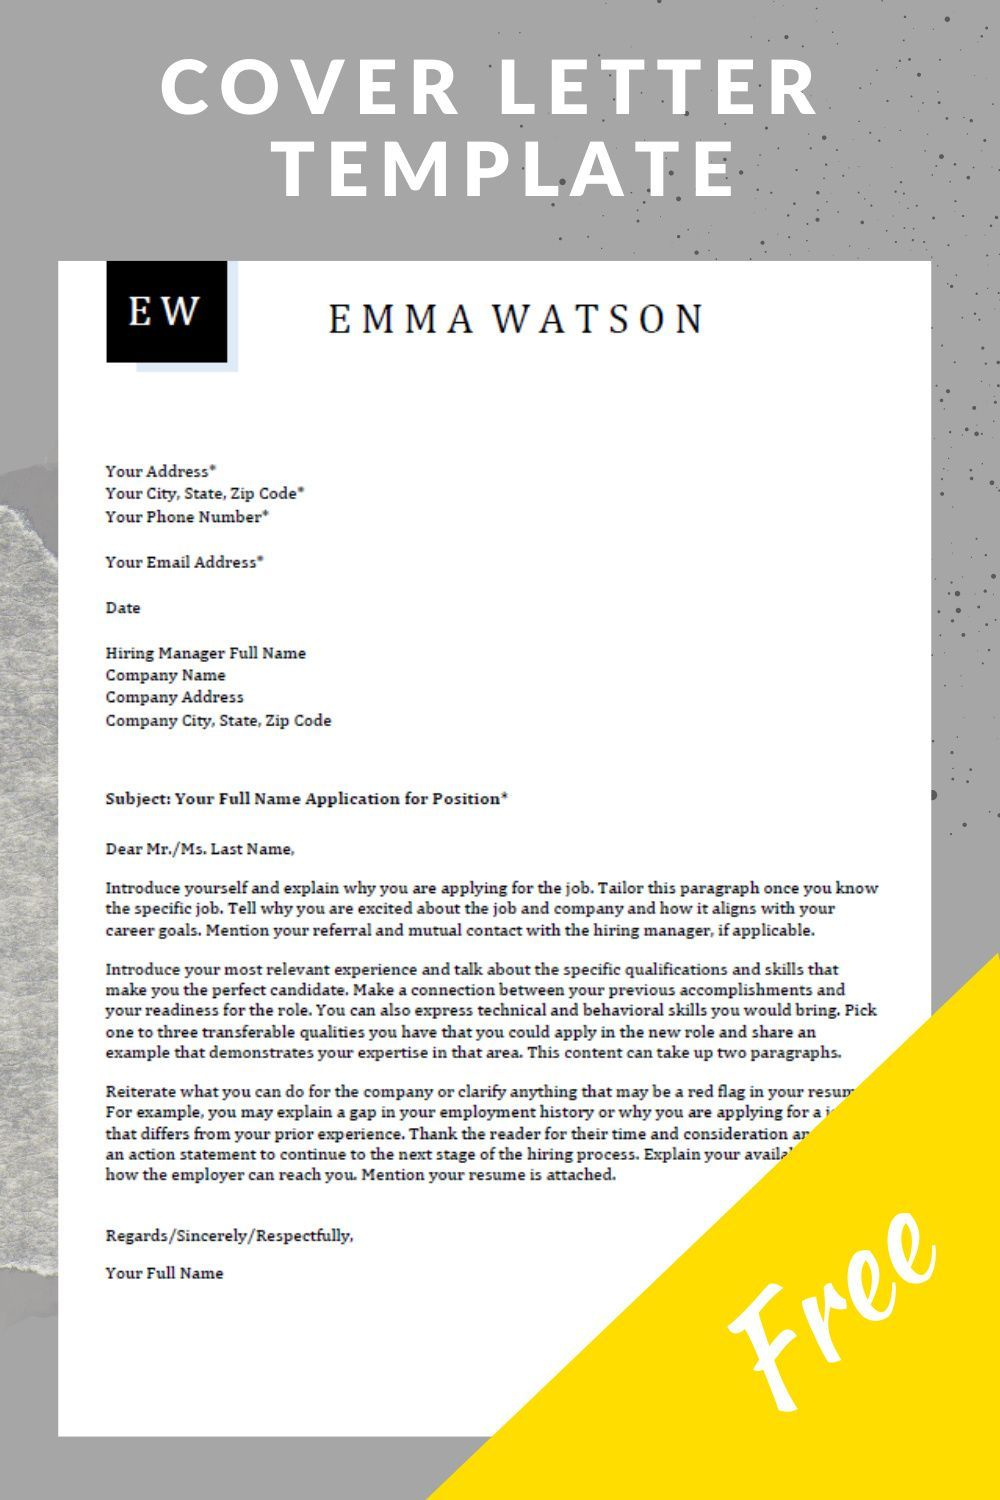 Cover Letter Template Download For Free Job Cover Letter Cover Letter For Resume Cover Letter Template Free cover letter template download